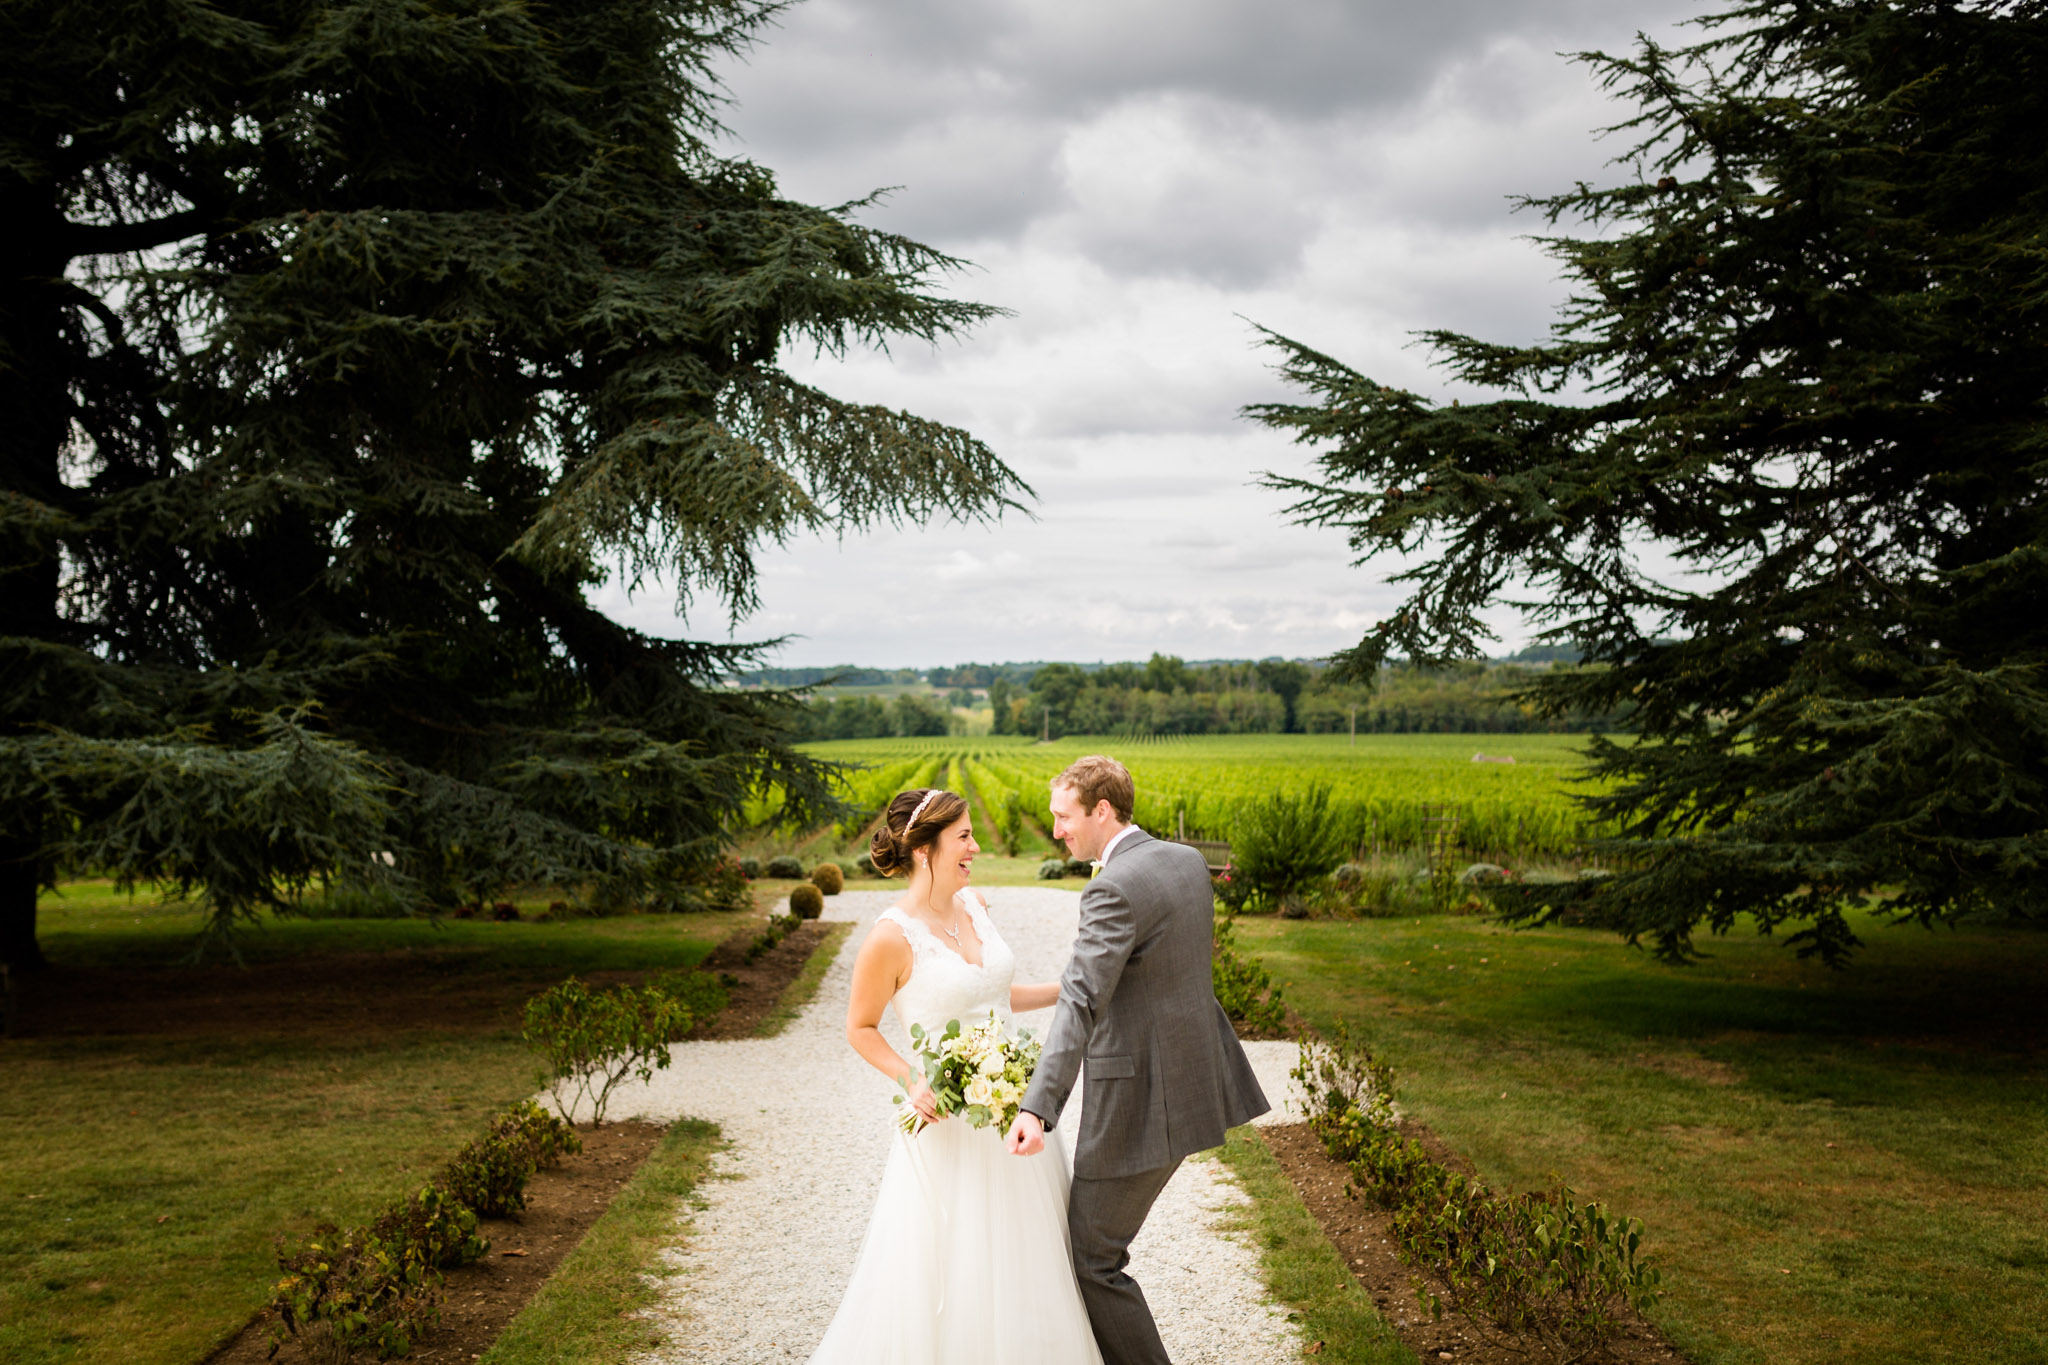 16_mariage-chateau-fombrauge